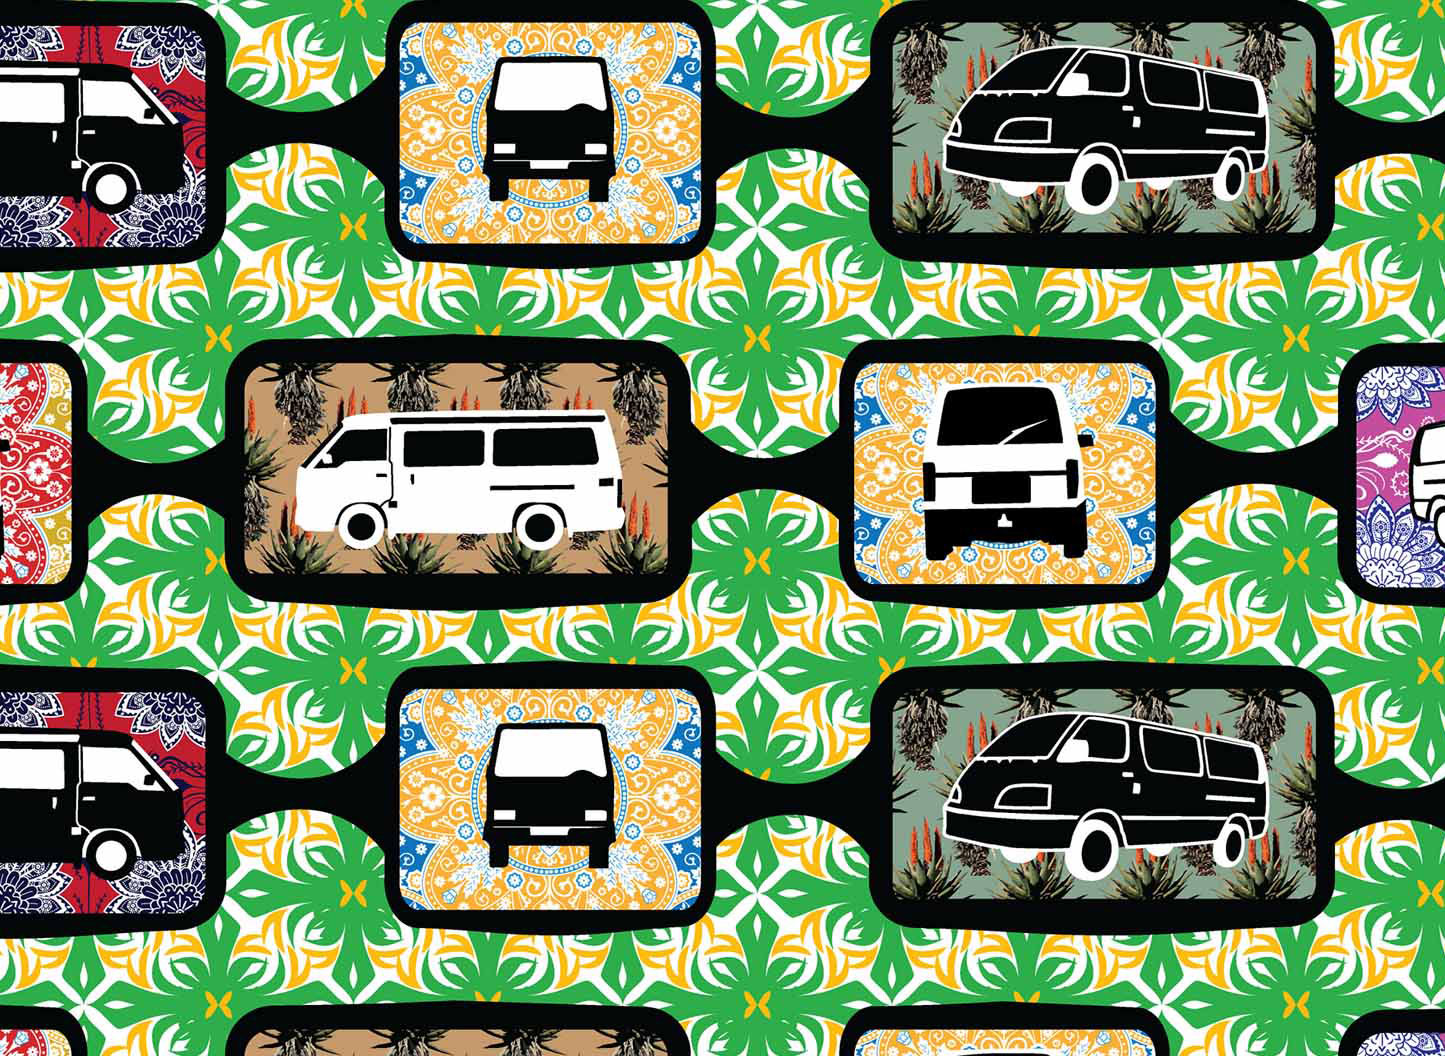 Linking Paradise pattern for wallpaper